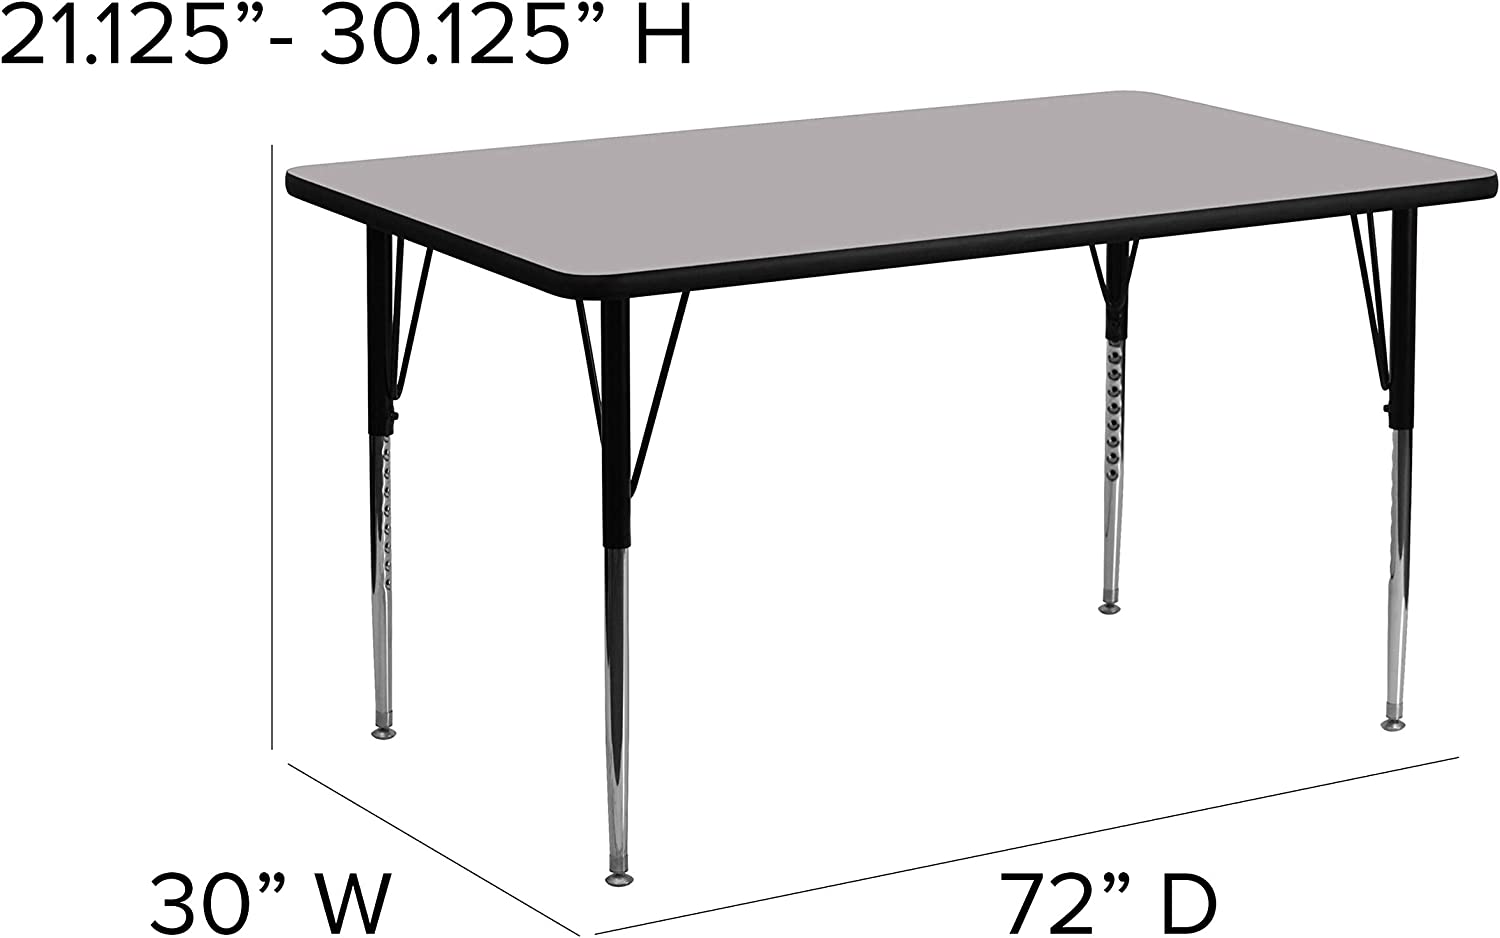 4 Fusion//Black Table Tops Made in The USA 18 Black Chairs Included Marco Group 30 x 60 Rectangular Shaped Table with